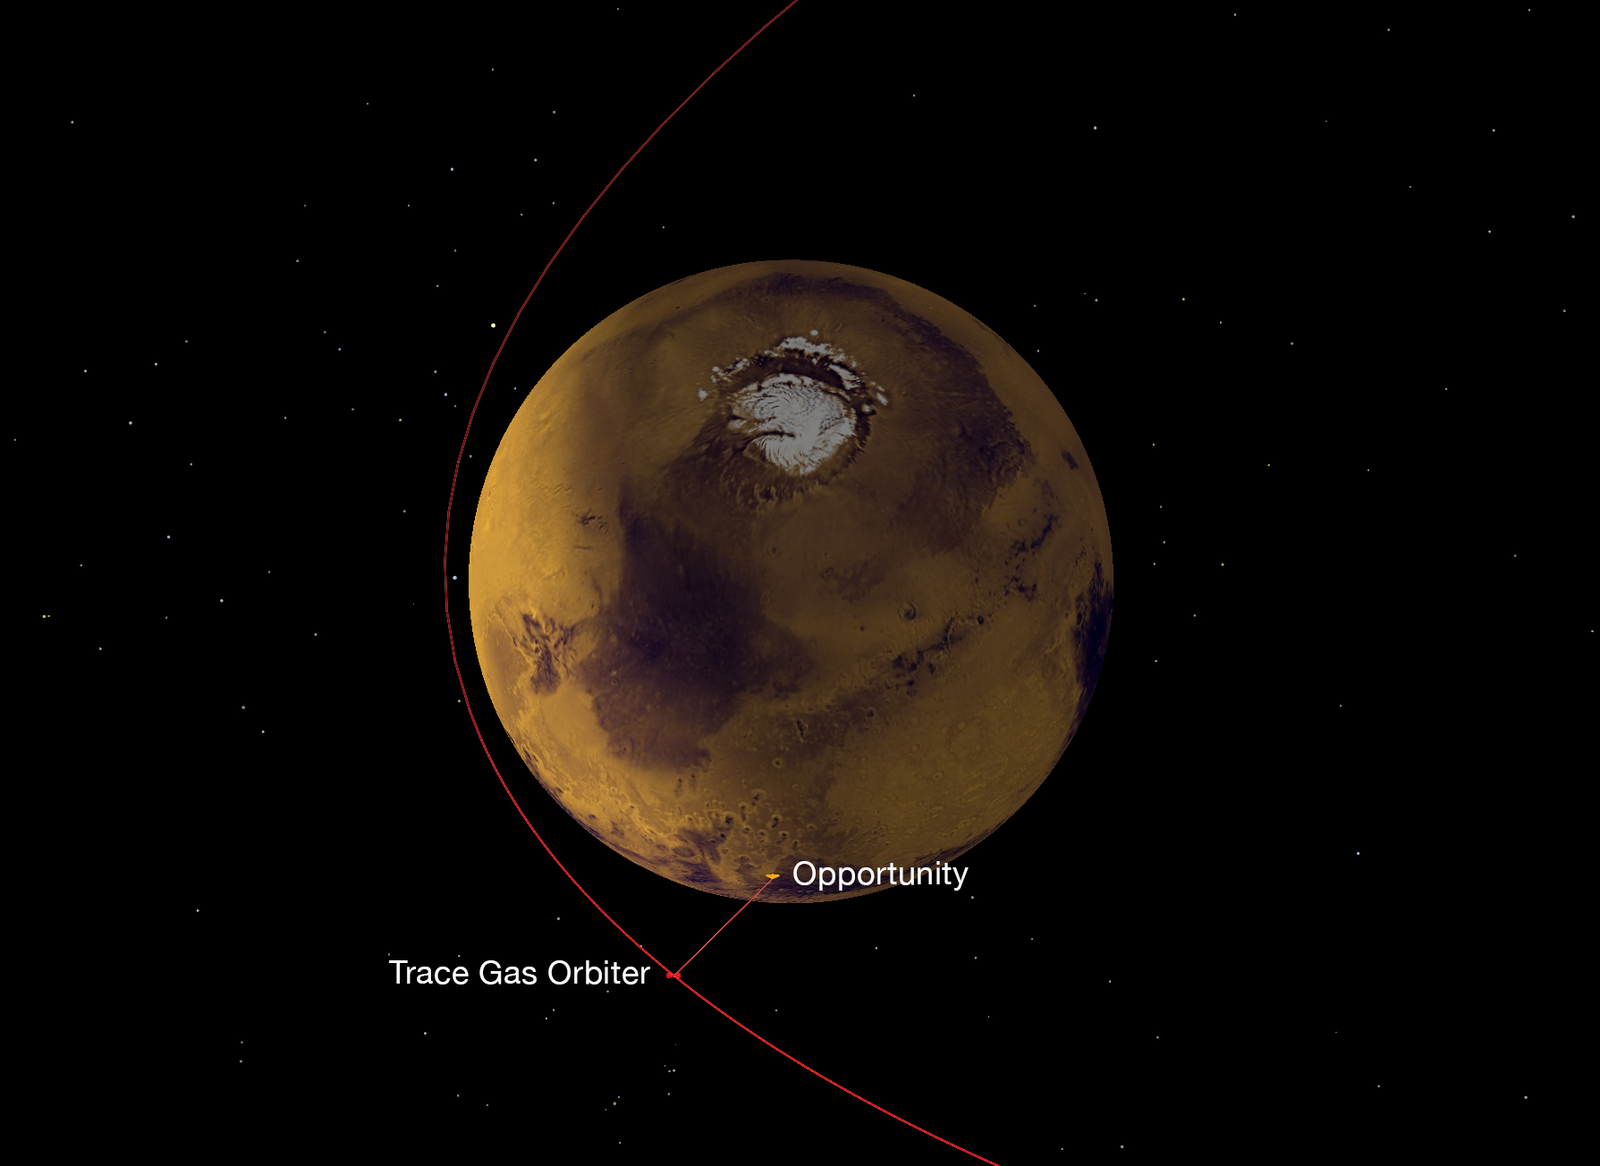 Mars through the eyes of TGO 100